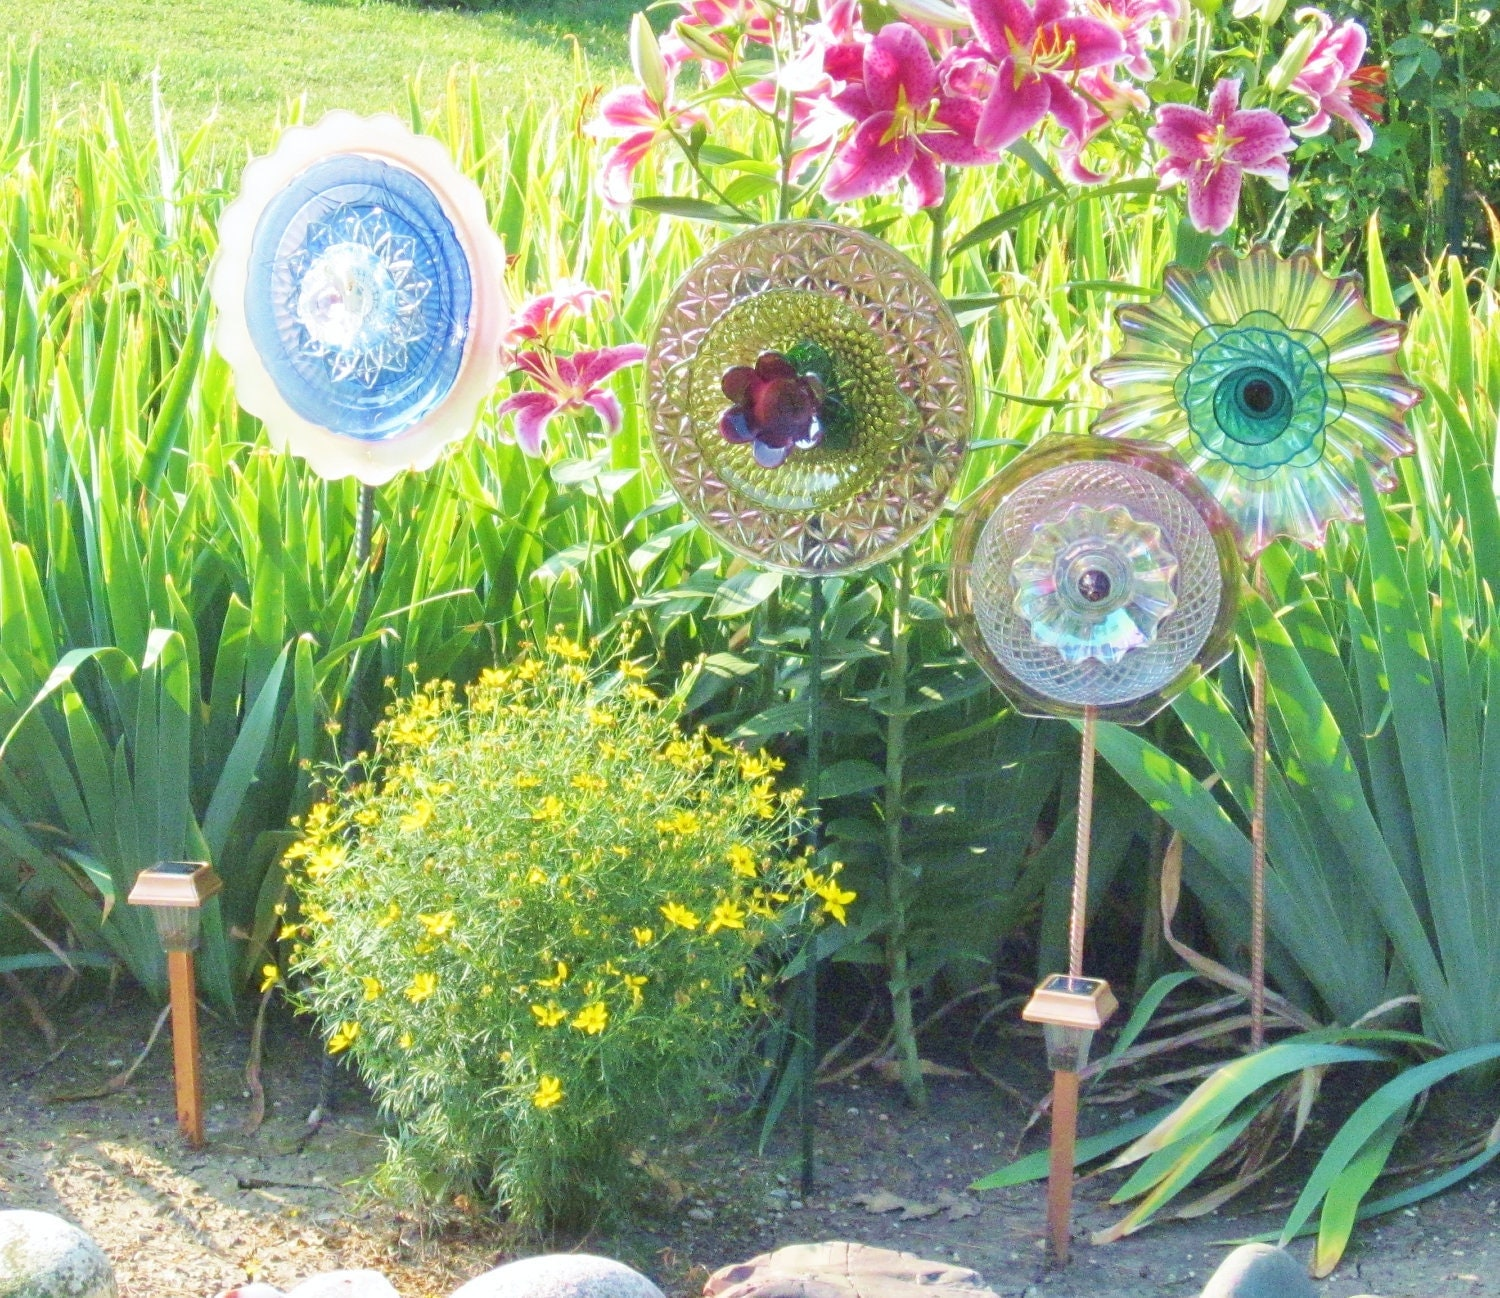 Garden flower outdoor decor recycled glass plate by jarmfarm for Homemade garden decorations